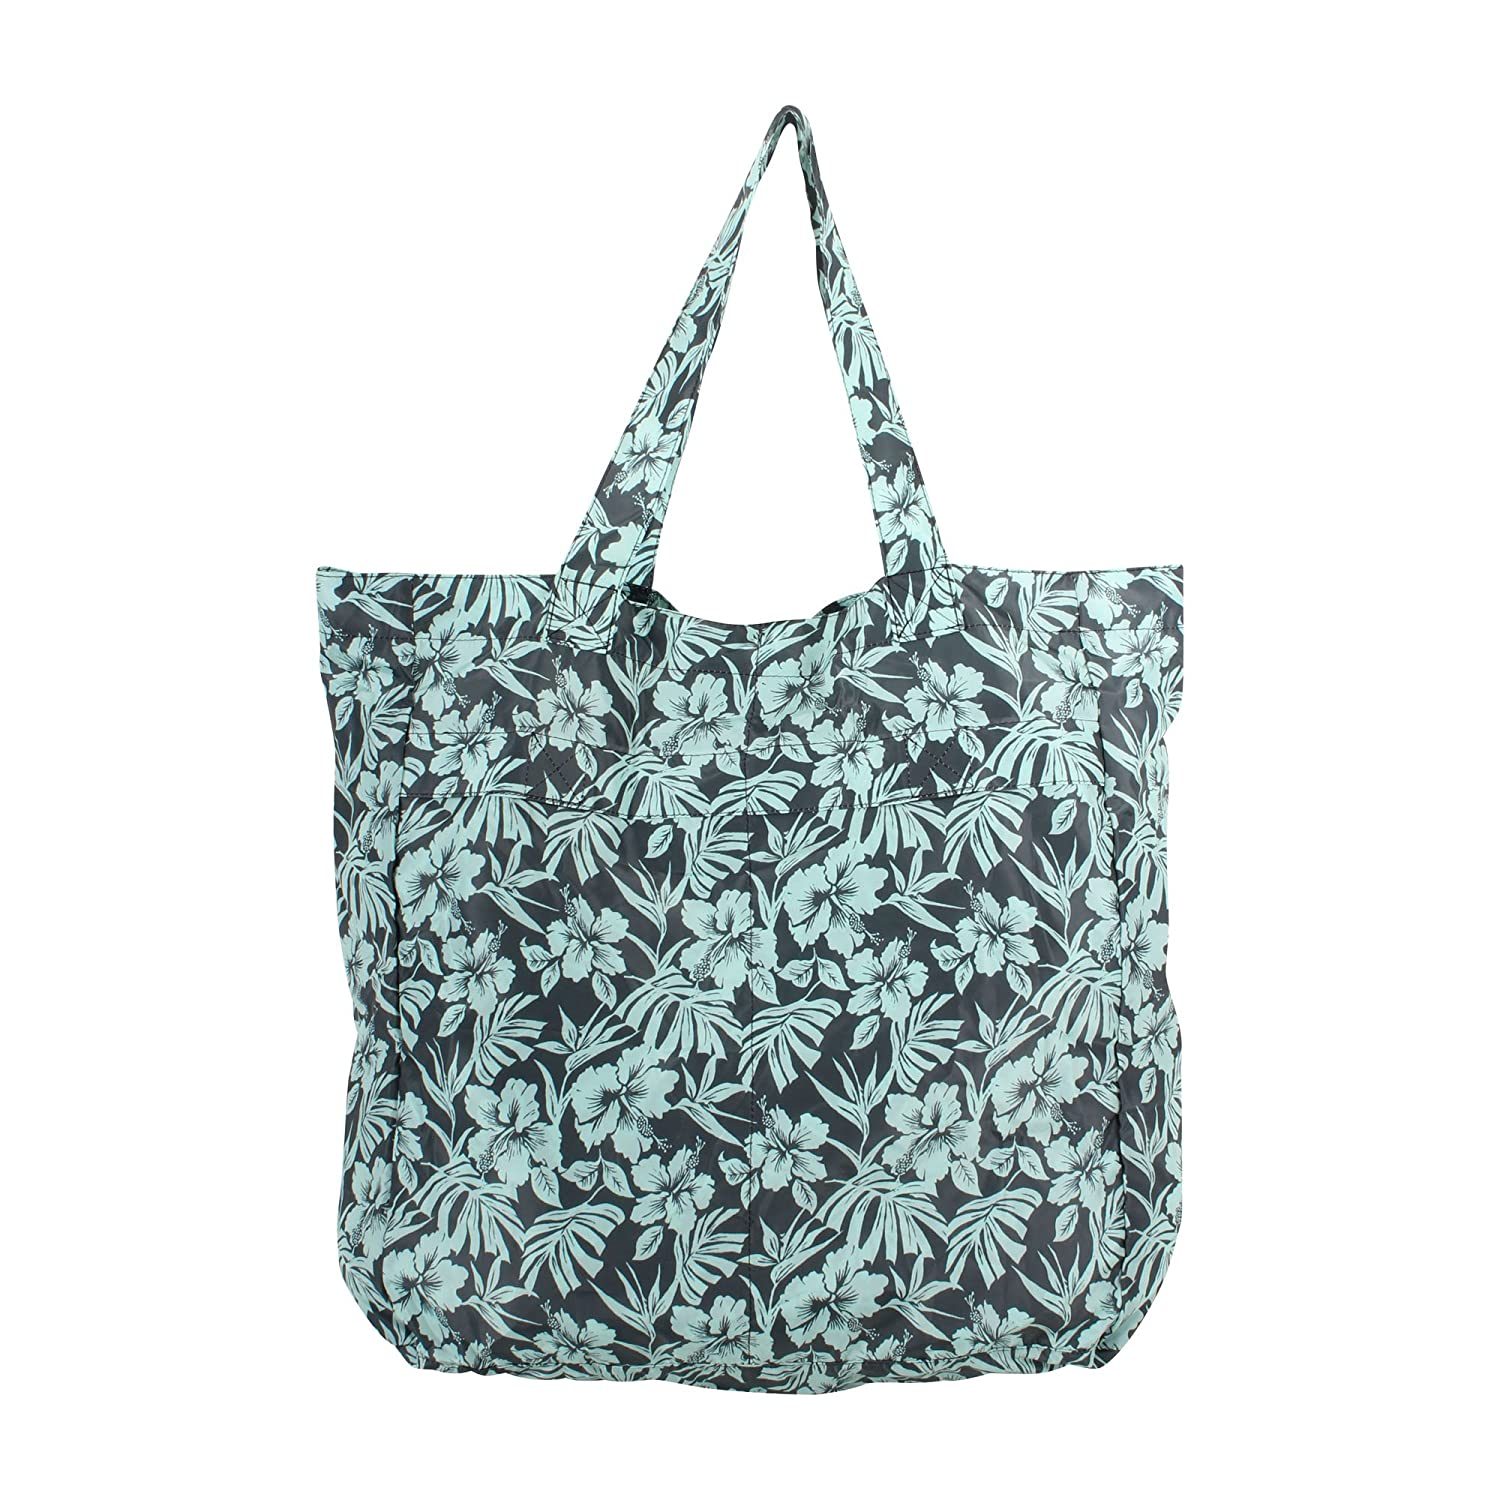 Margaritaville Womens Girls Convertible Foldable Pouch Tote Bag (See More Colors and Designs) GLD87616AQ